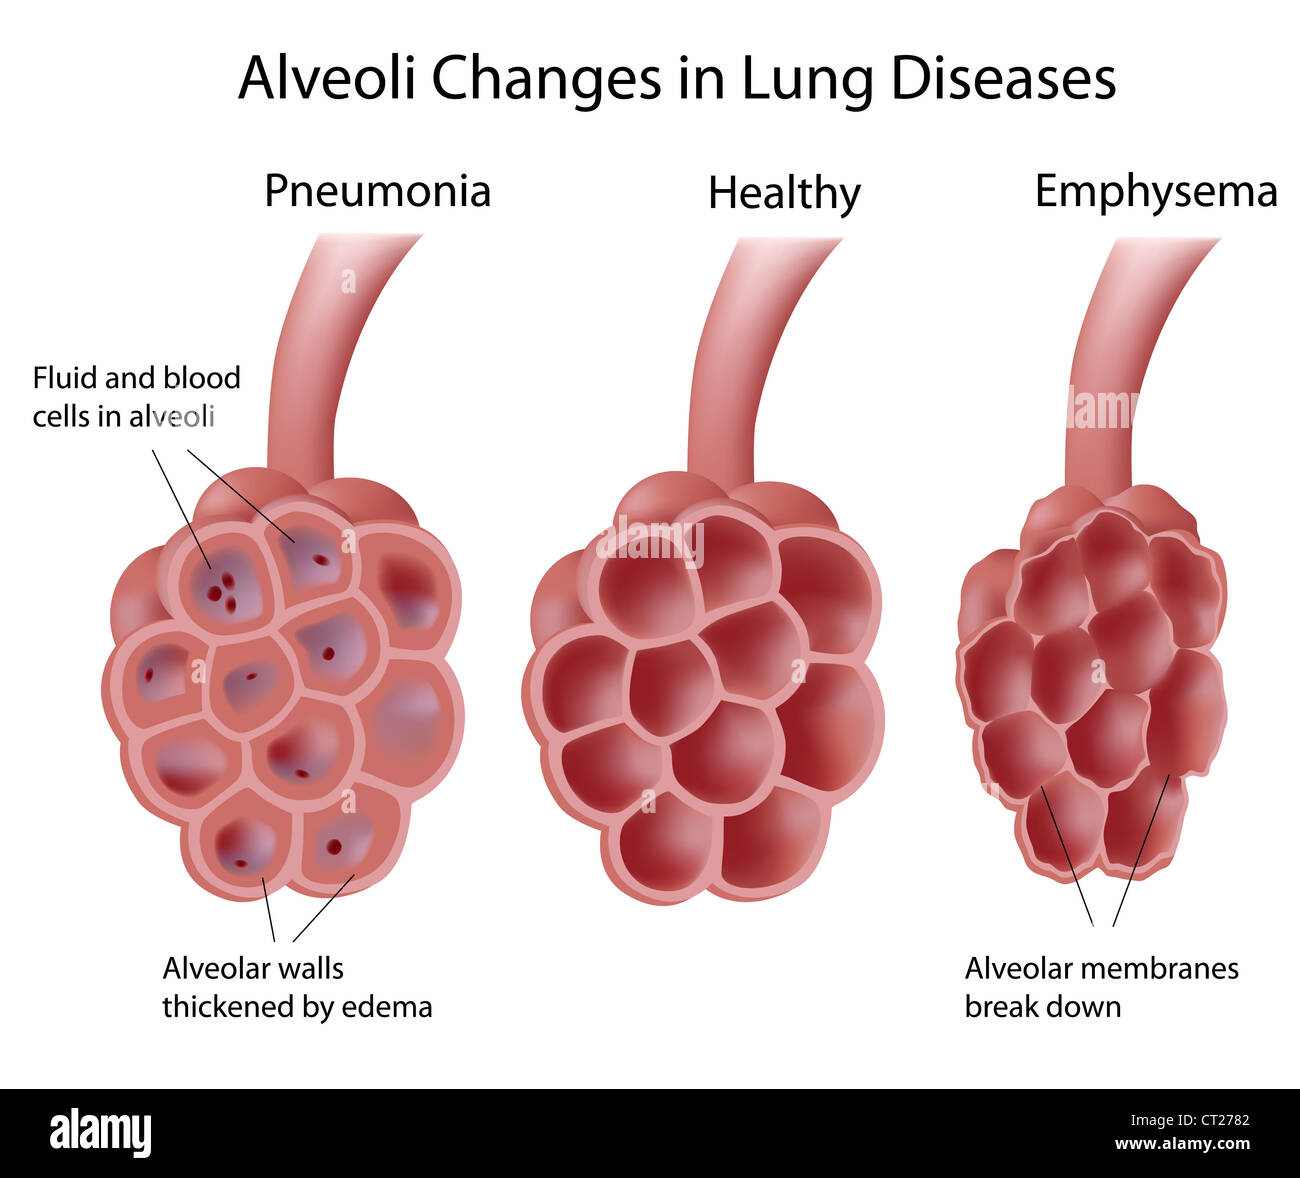 Alveoli and lung diseases stock photo 49222098 alamy alveoli and lung diseases ccuart Choice Image